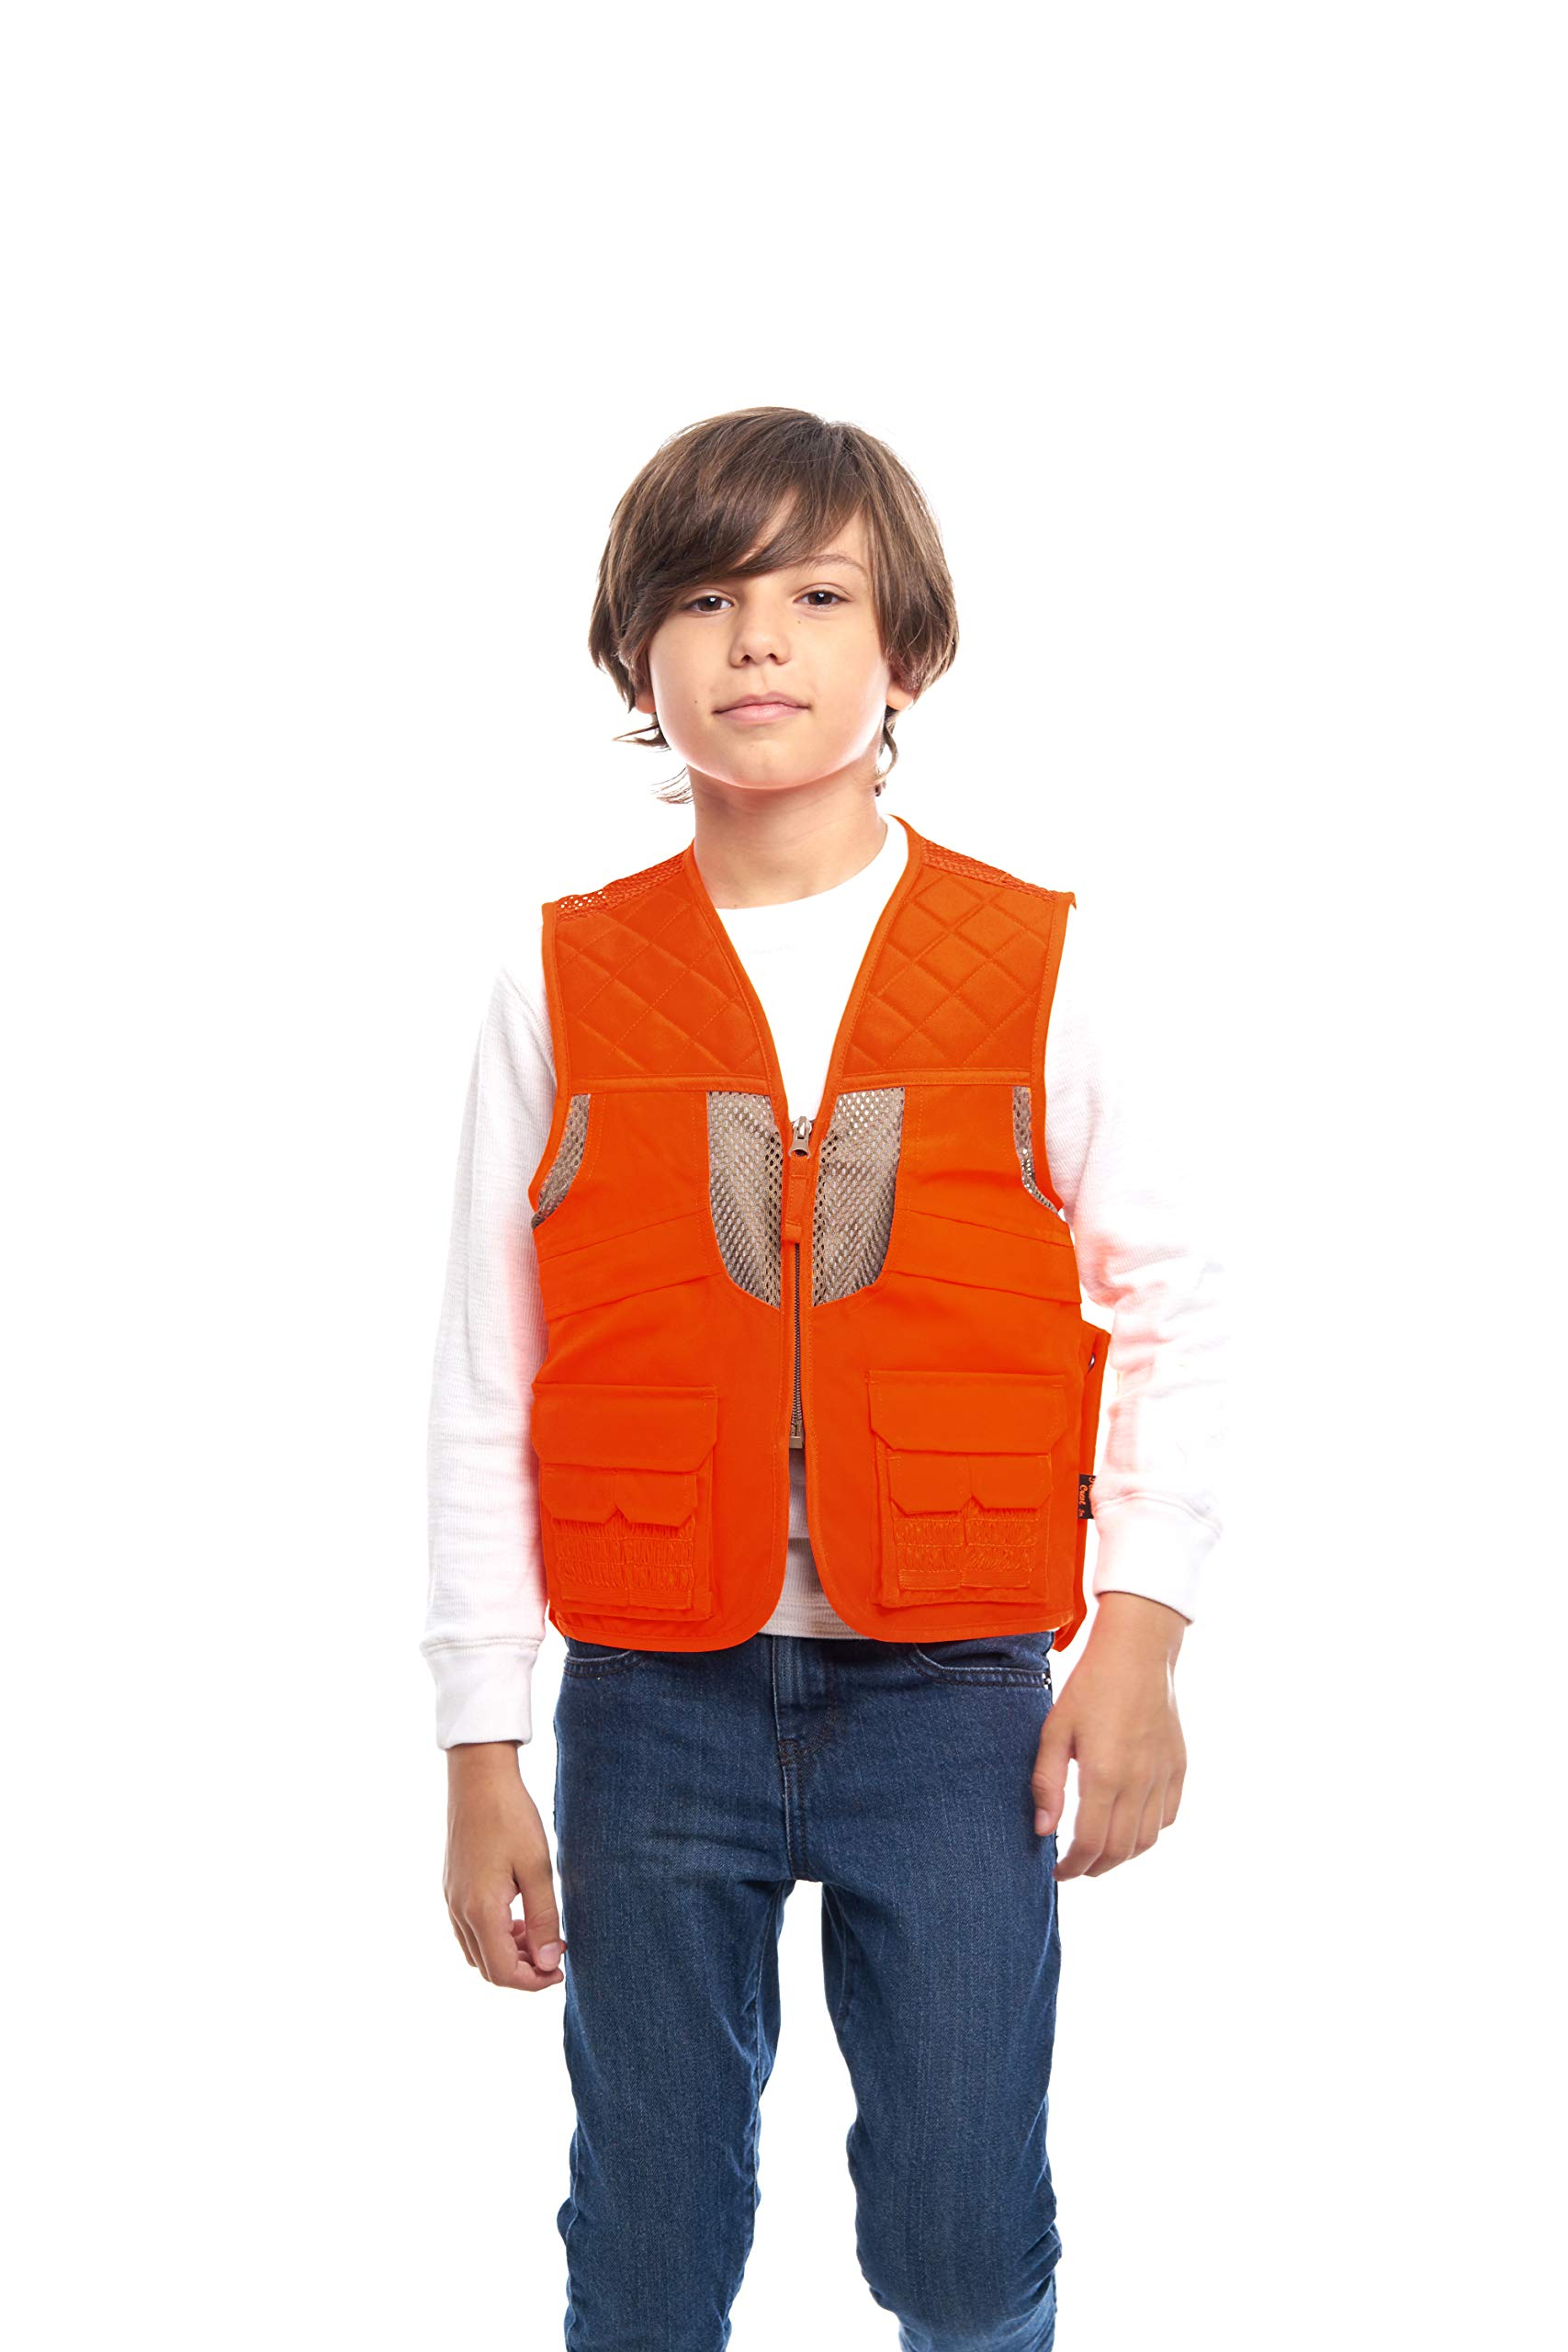 TrailCrest Kids Blaze Orange Deluxe Front Loader Hunting Vest, XS